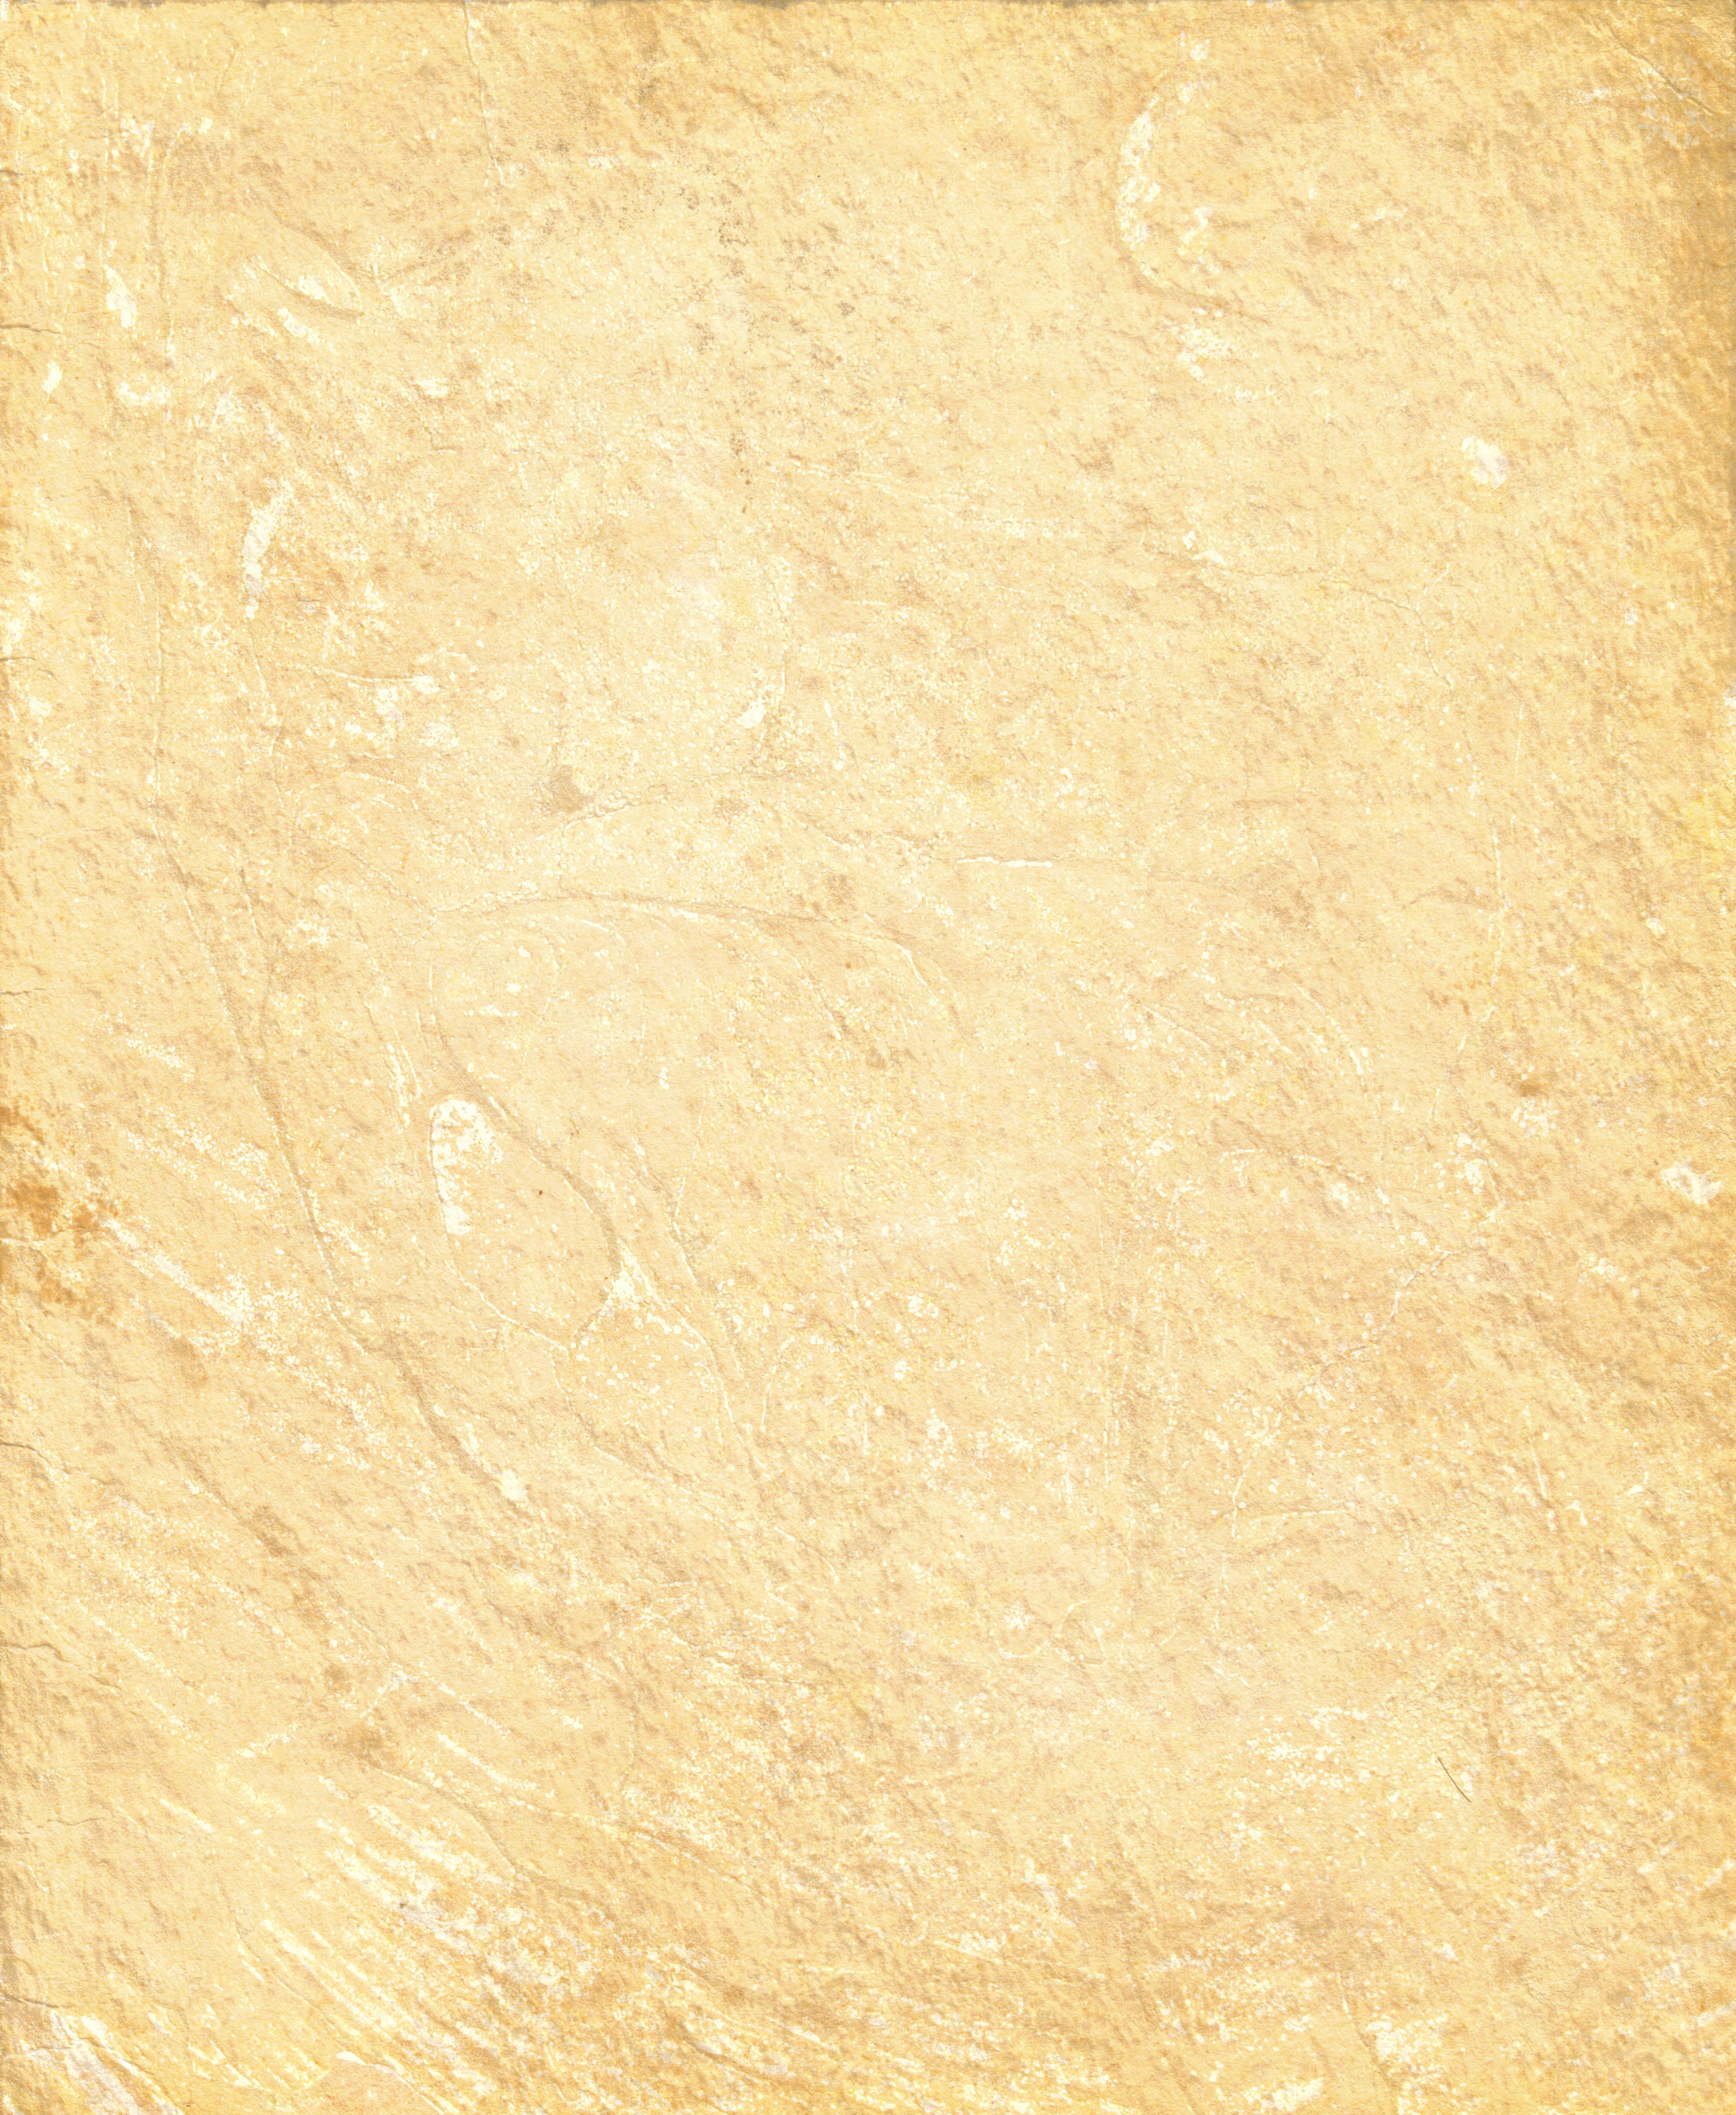 paper texture by akinna-stock